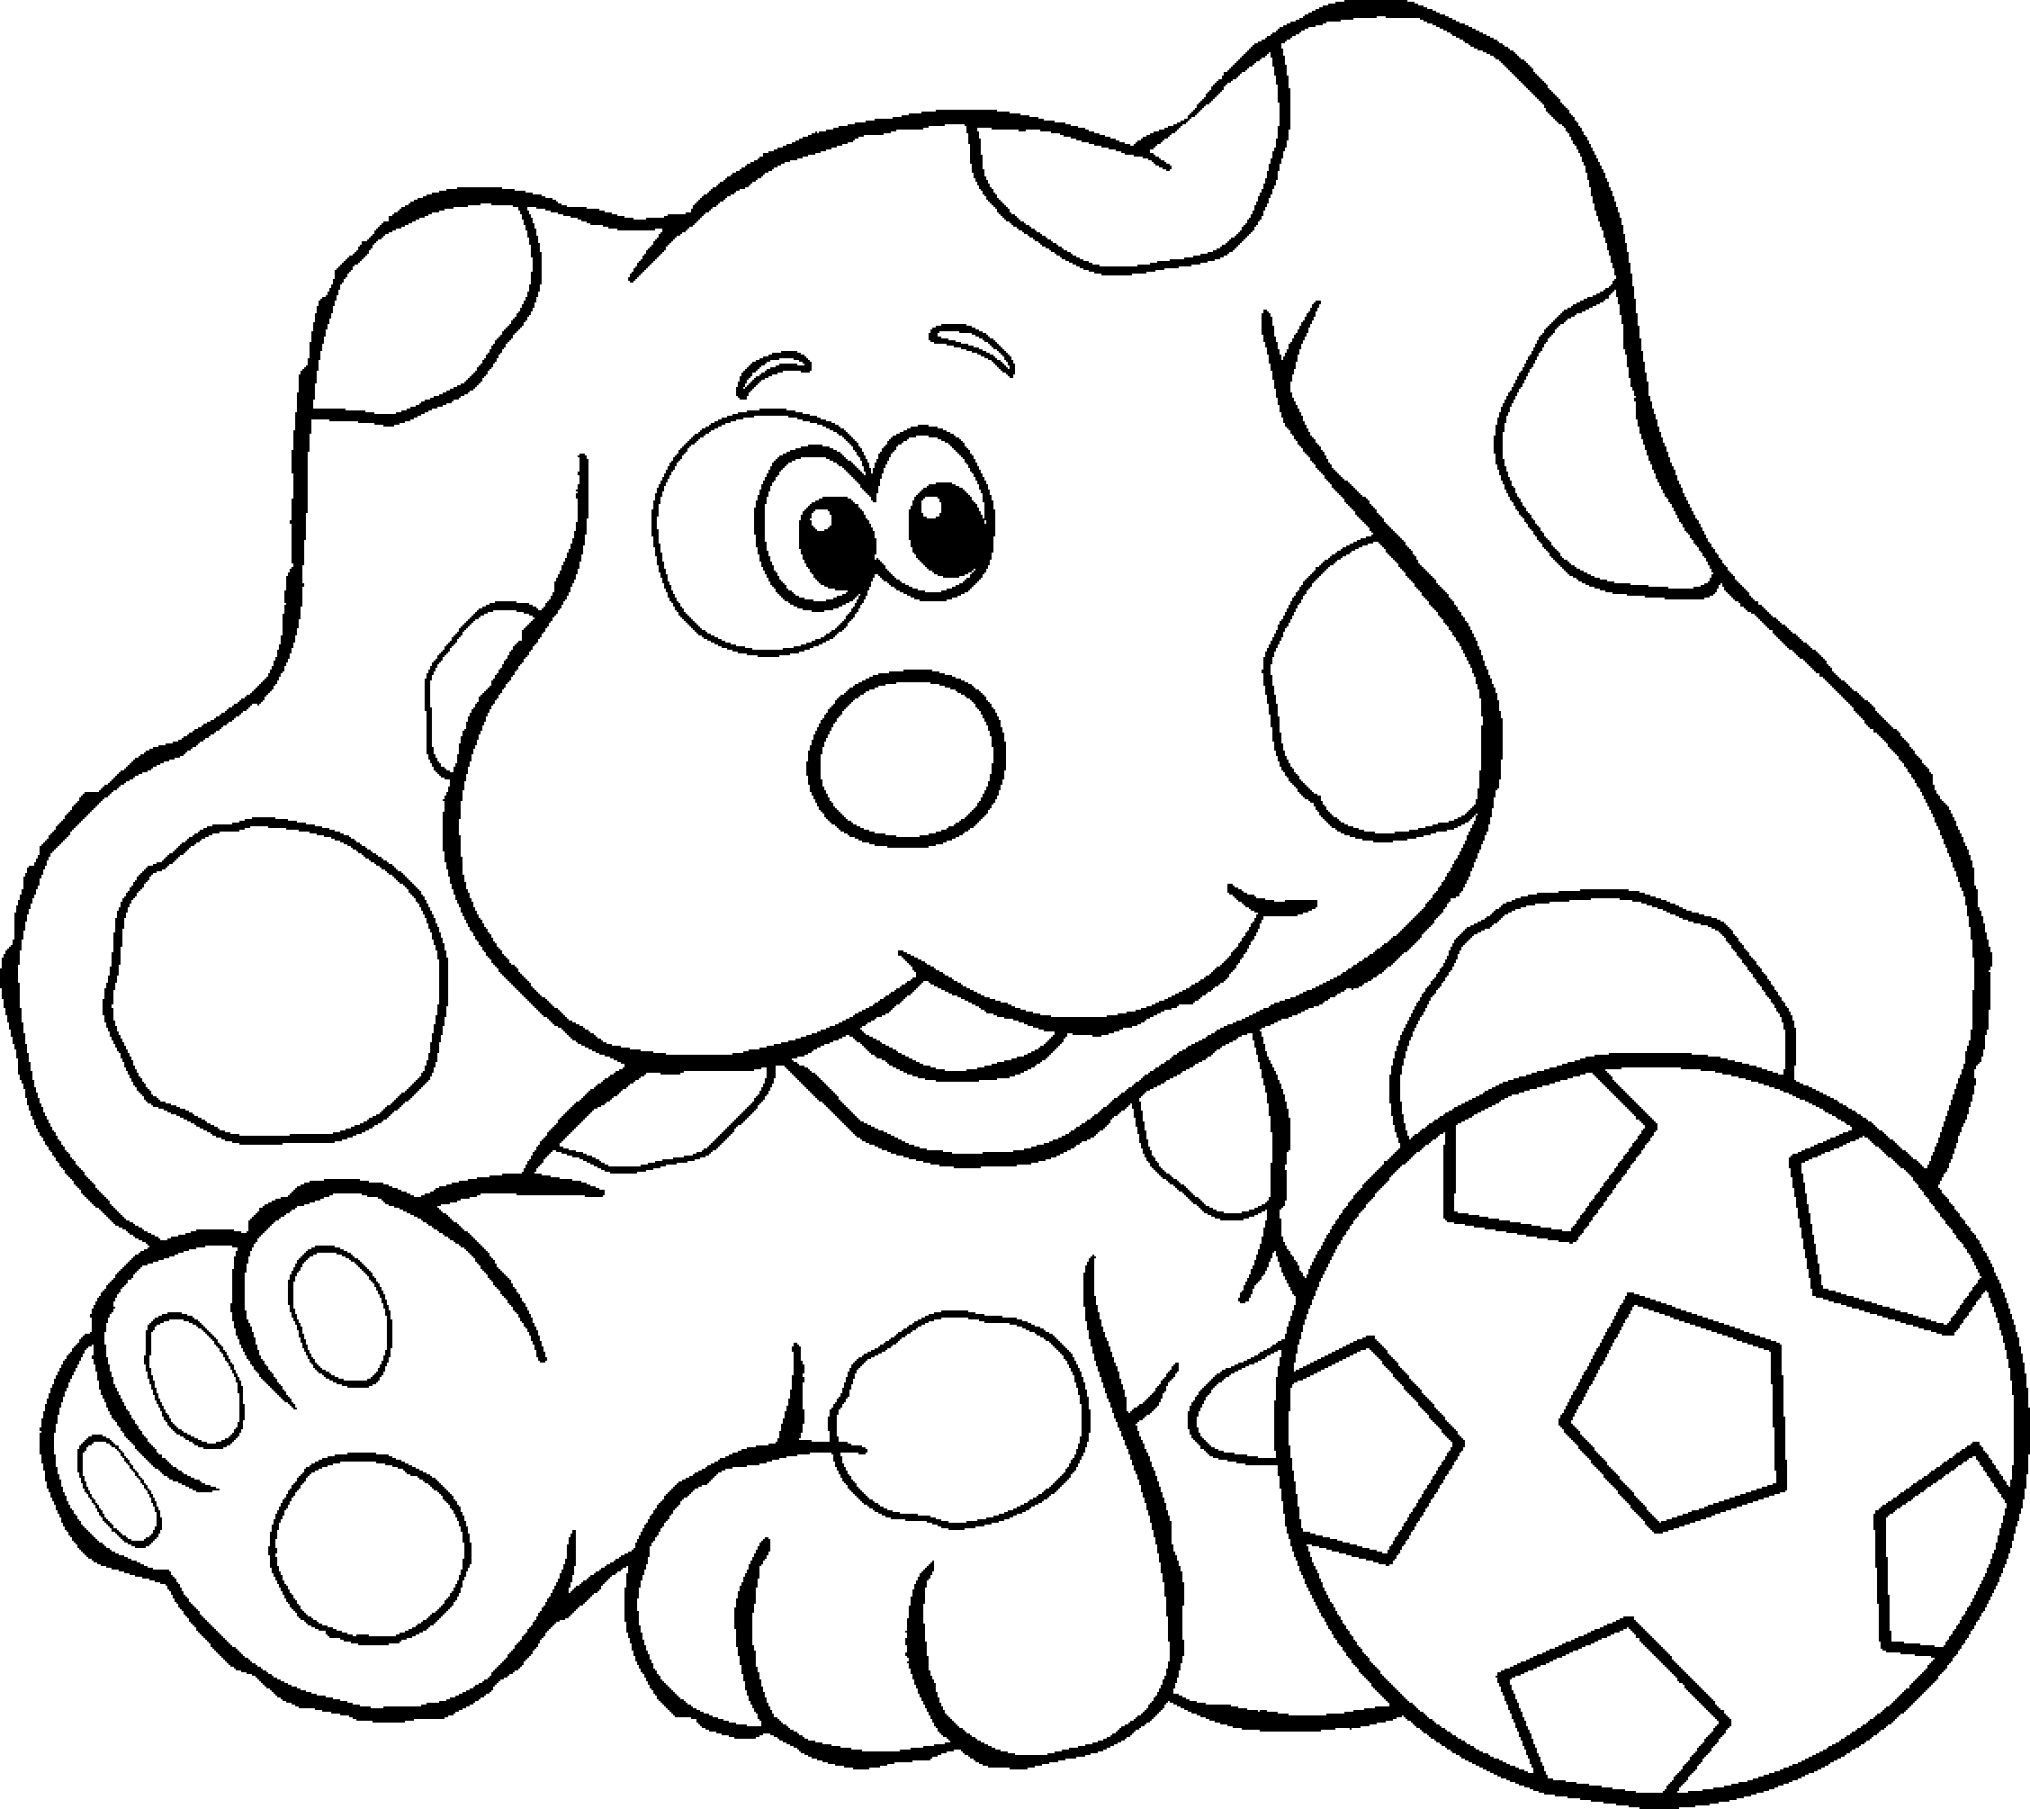 Nickelodeon Printable Coloring Pages - http://freecoloringpage.info ...